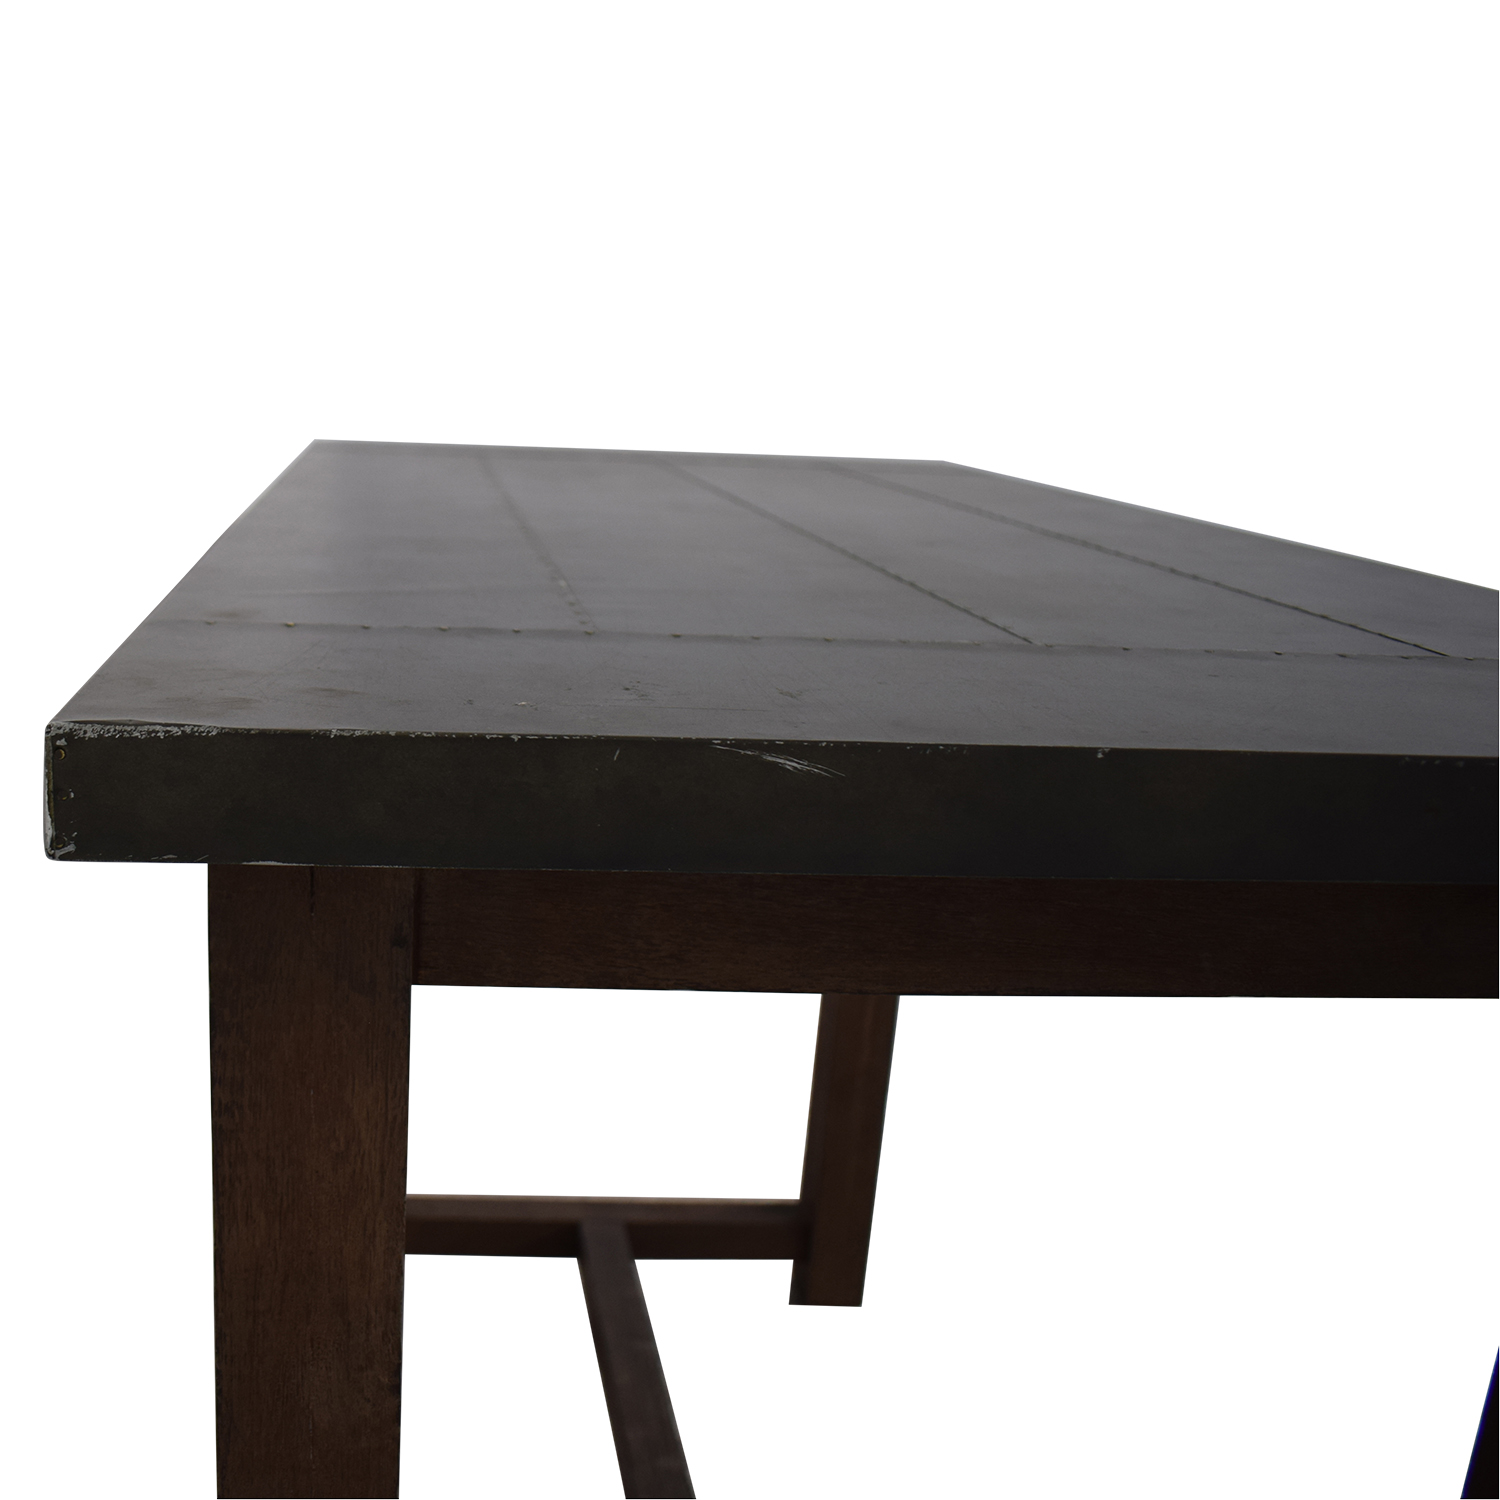 CB2 Crate & Barrel High Counter Table Dinner Tables